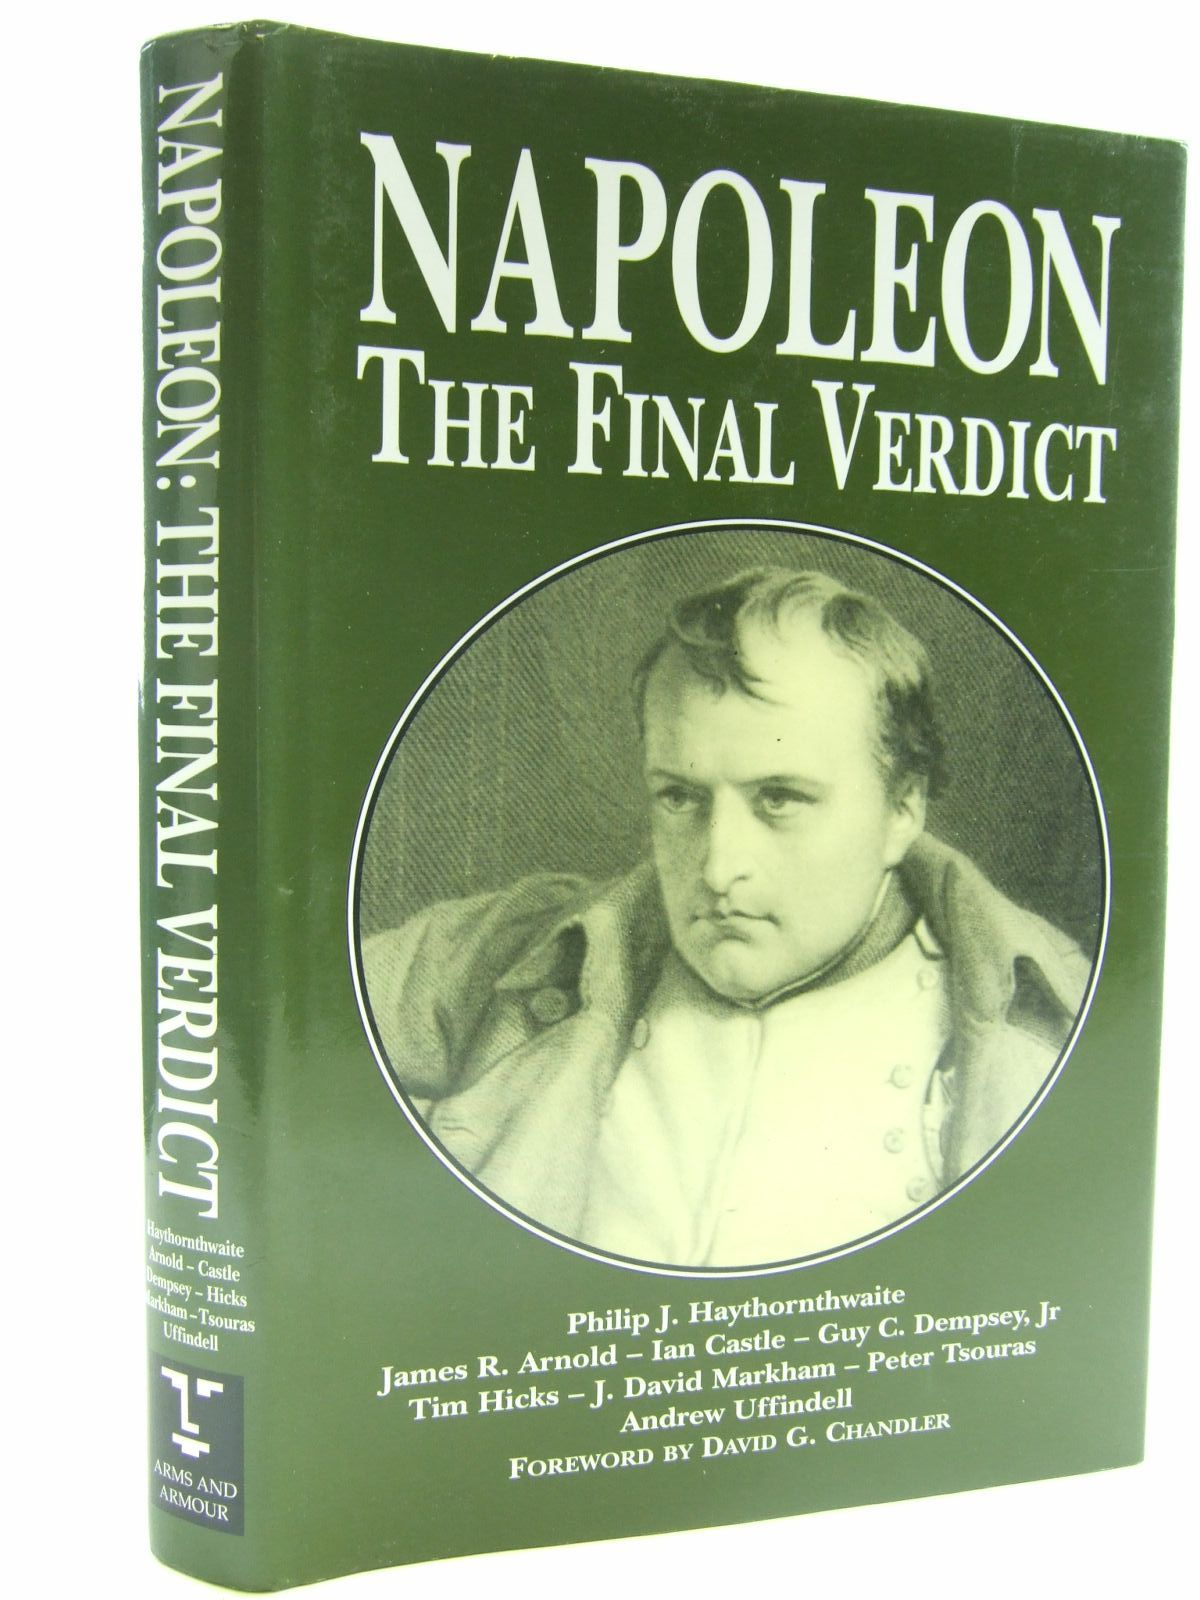 books written about napoleon bonaparte history essay In this deliciously sardonic fable, napoleon bonaparte escapes from  imprisonment on the isle of st  quarterly essay  ian holm and this beautiful  edition of the death of napoleon includes a new afterword by the author  'an  elegant and engaging piece of alternate history, gently tragic and wryly comic.